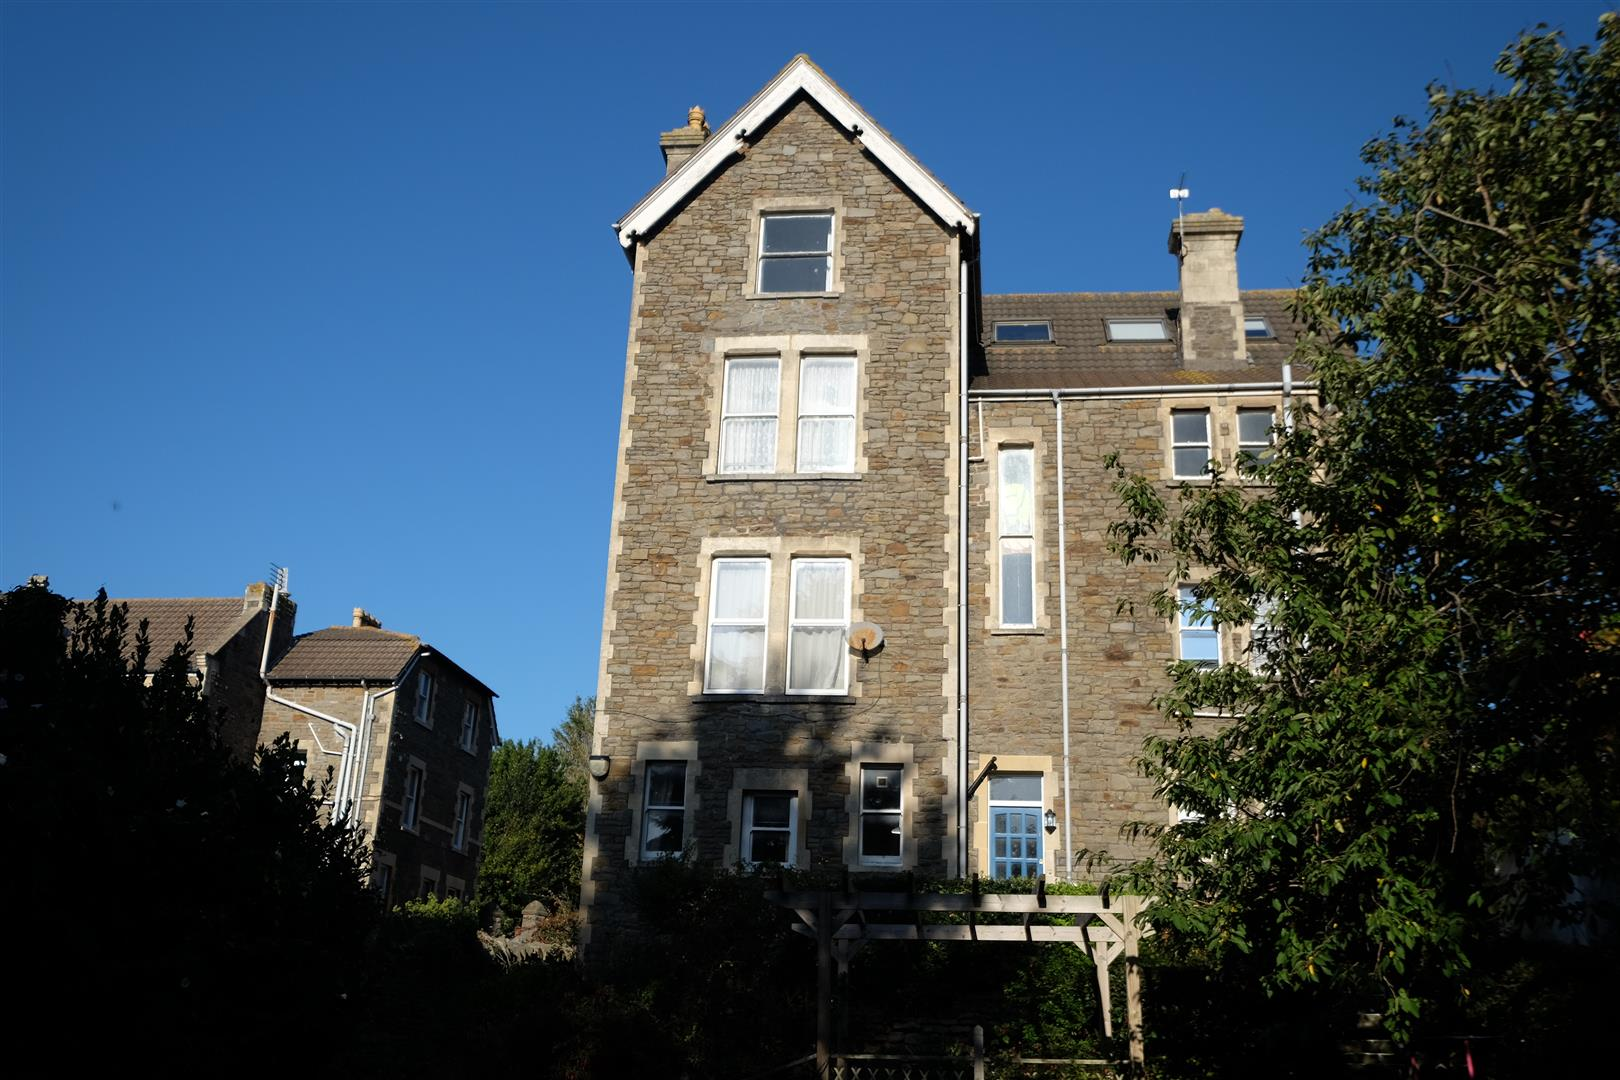 Images for CLEVEDON FLAT - REDUCED PRICE FOR AUCTION EAID:hollismoapi BID:11